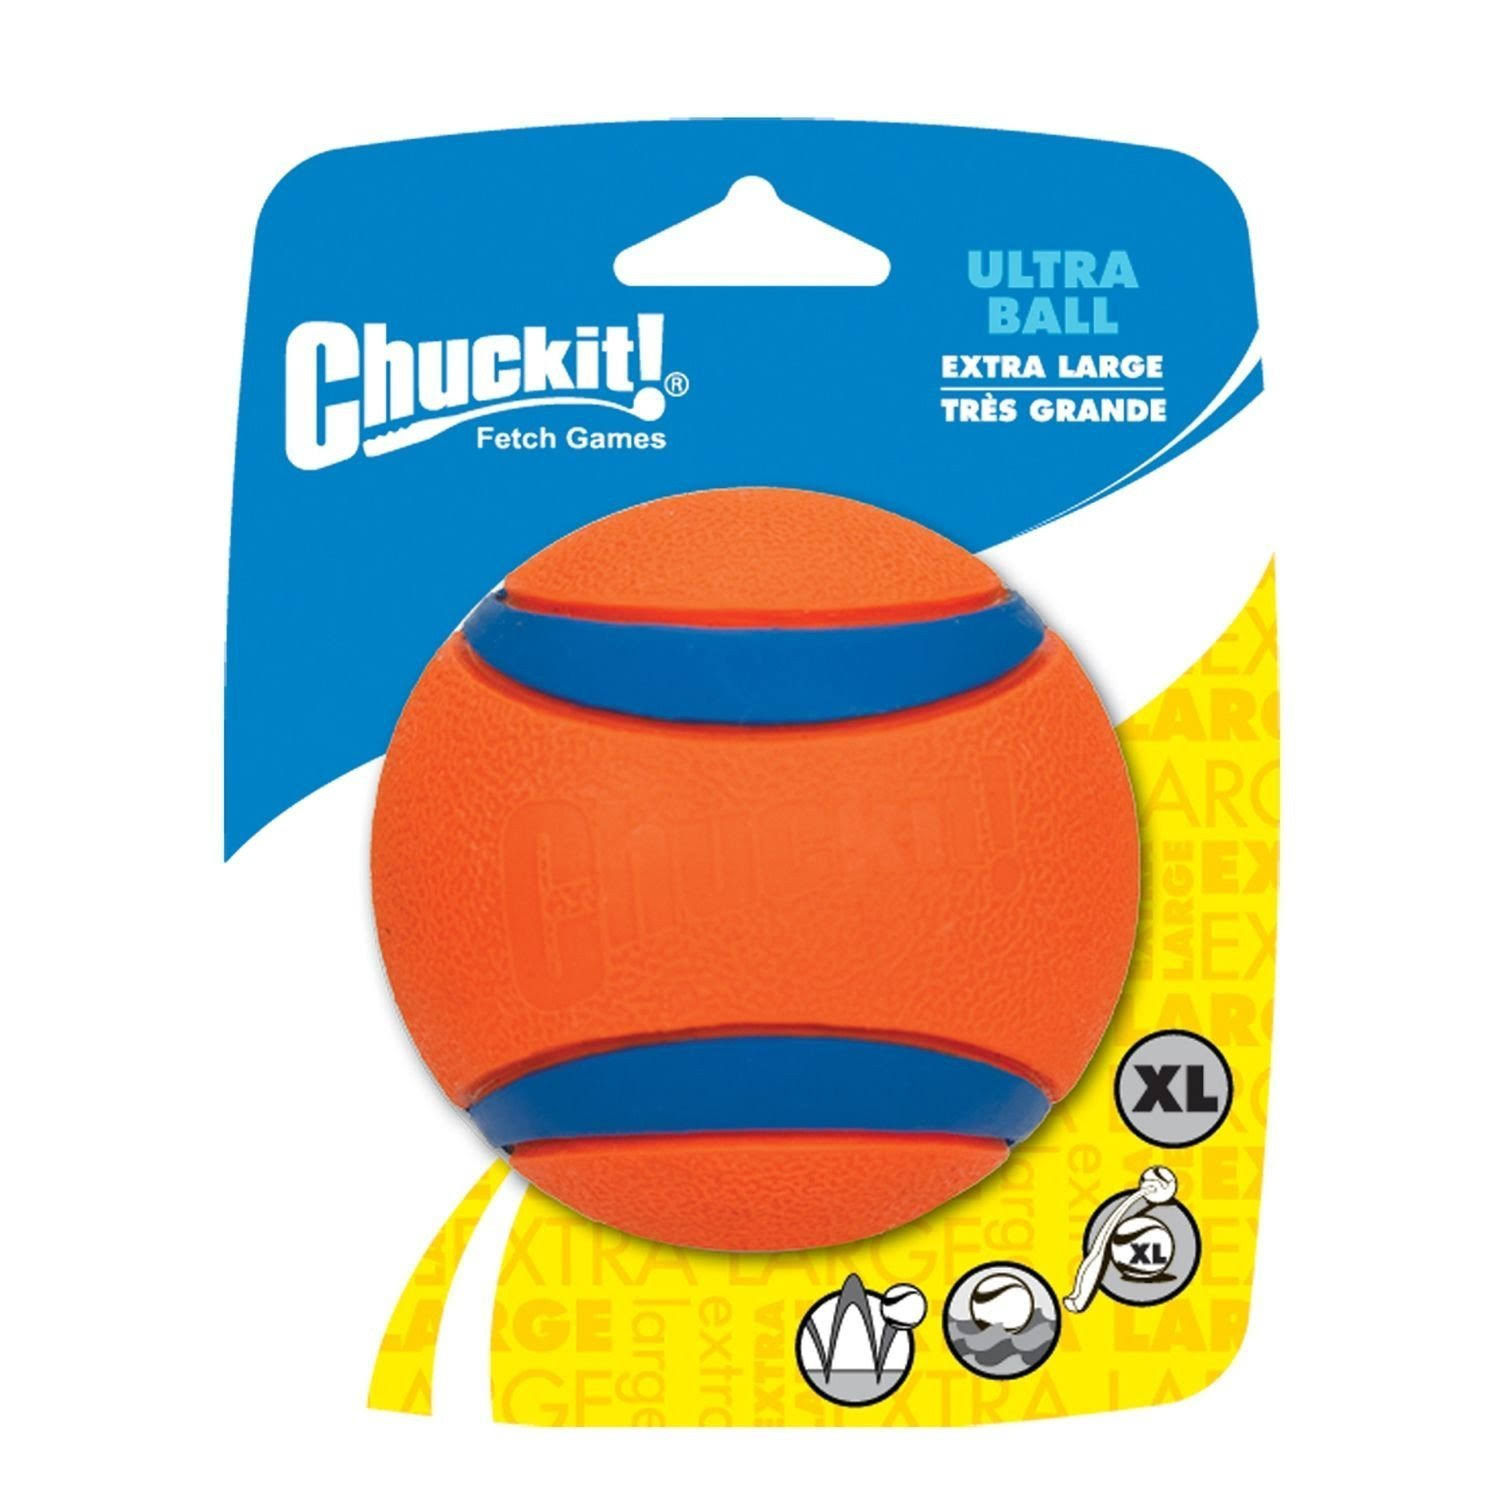 Chuckit Ultra Ball Dog Toy - X-Large